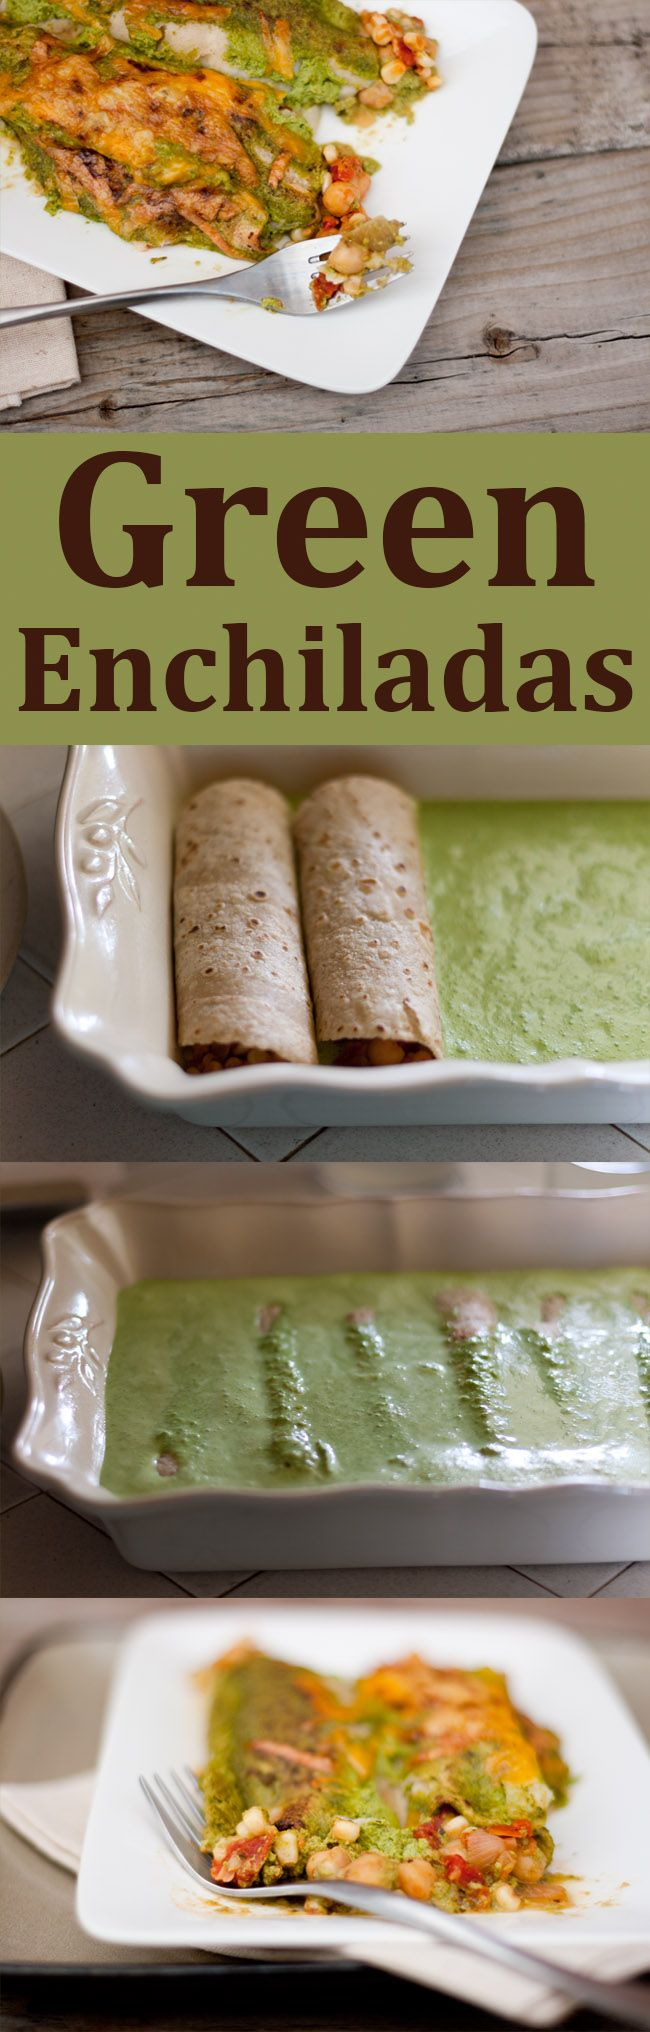 Green Enchiladas. I figured they would be tasty. But, I wasn't really prepared for just how tasty they would be. And, a healthy enchilada? Sign me up!